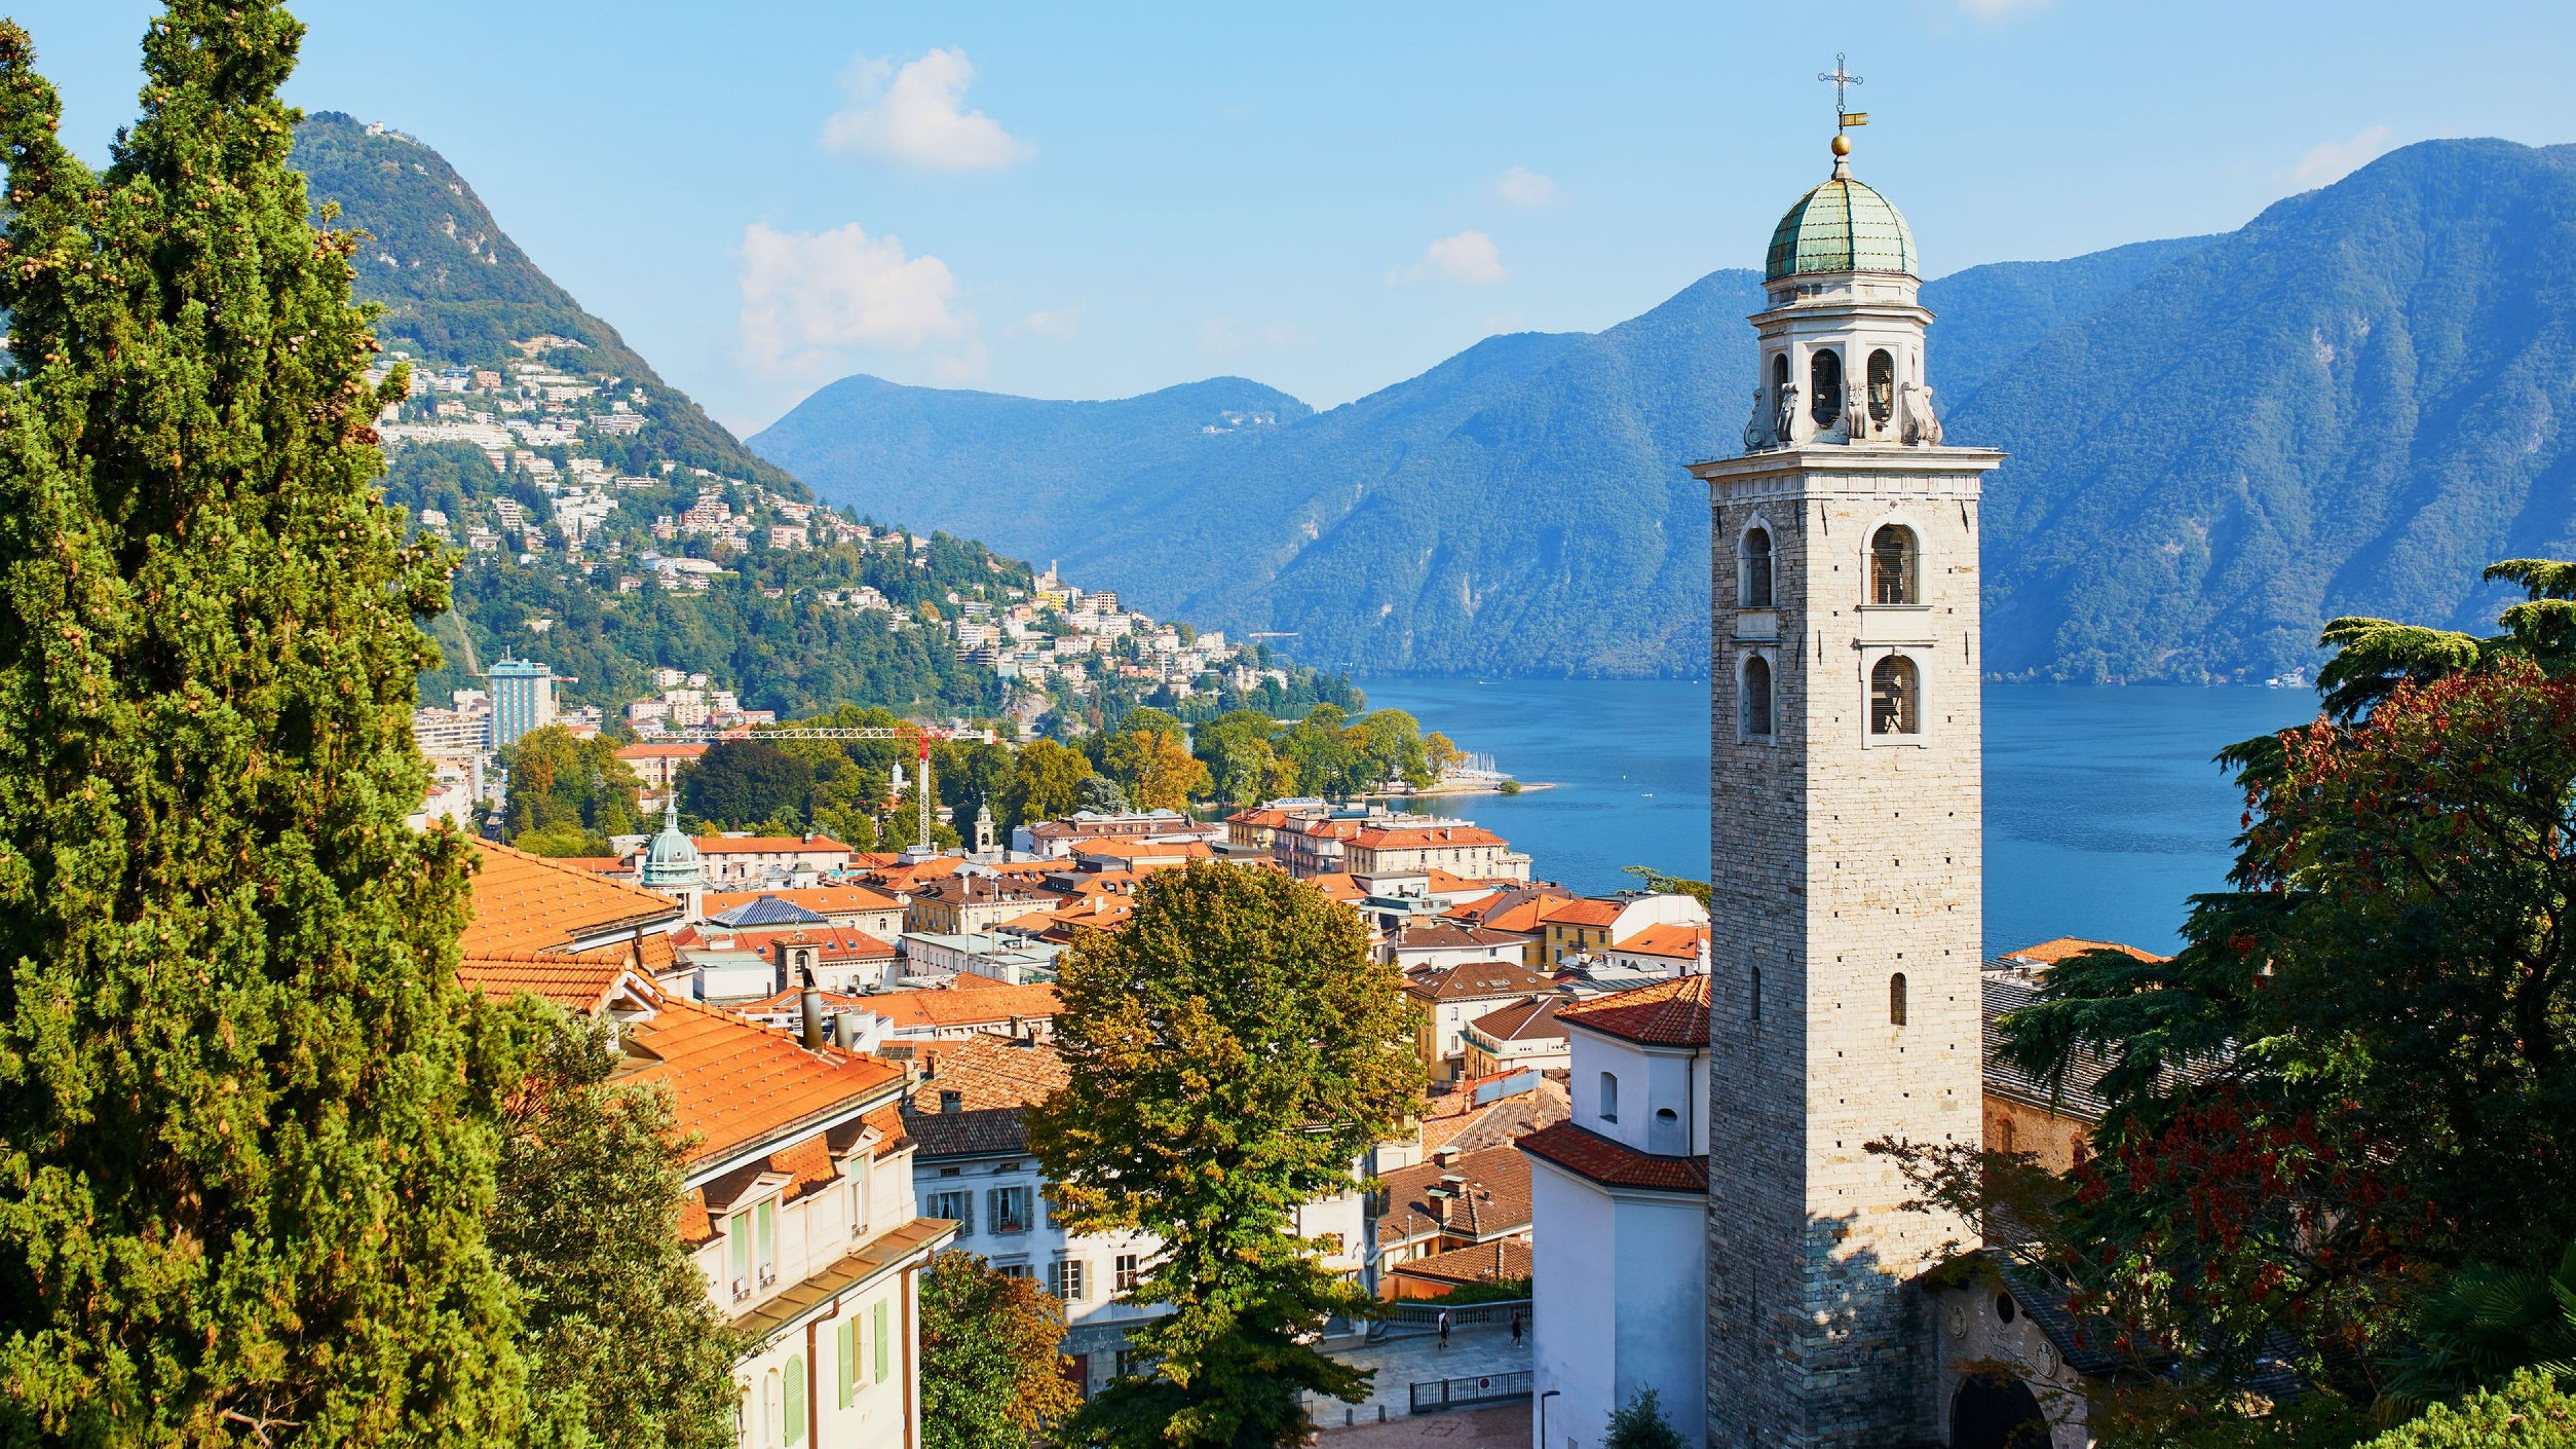 Scenic view to the old town of Lugano, canton of Ticino, Switzerland